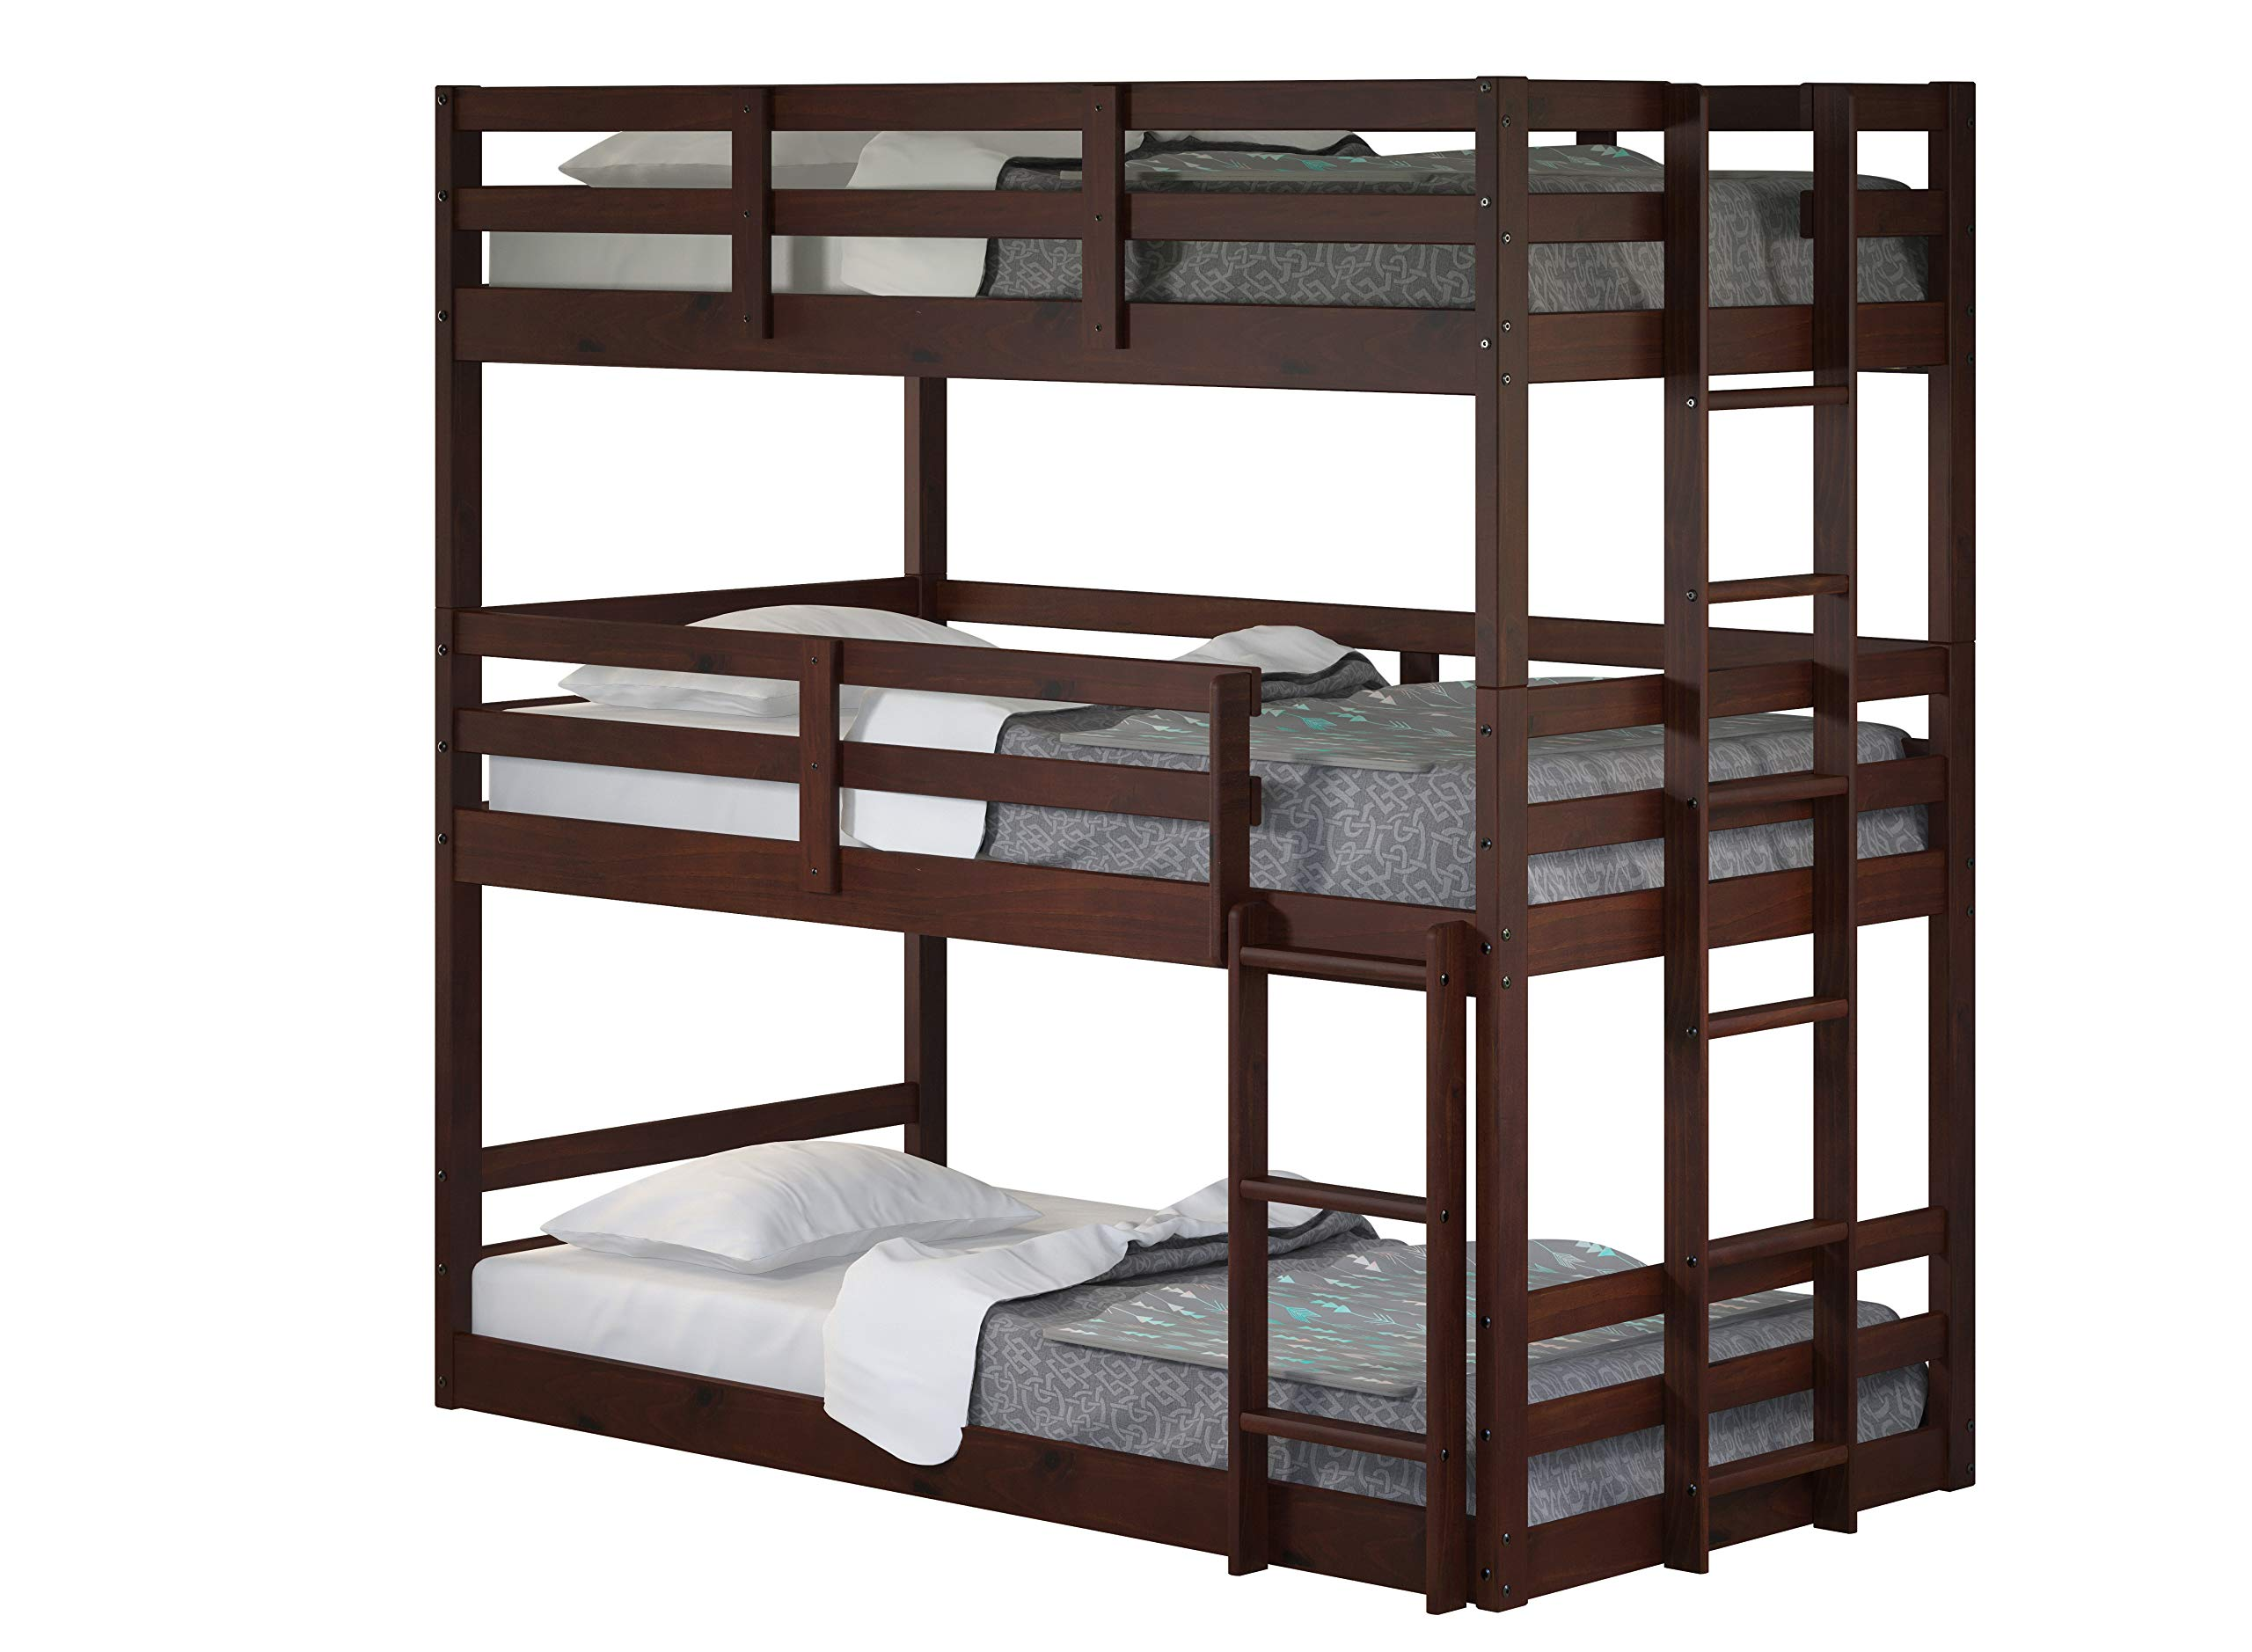 DONCO Kids Triple Bunk Bed, Twin/Twin/Twin, Dark Cappuccino